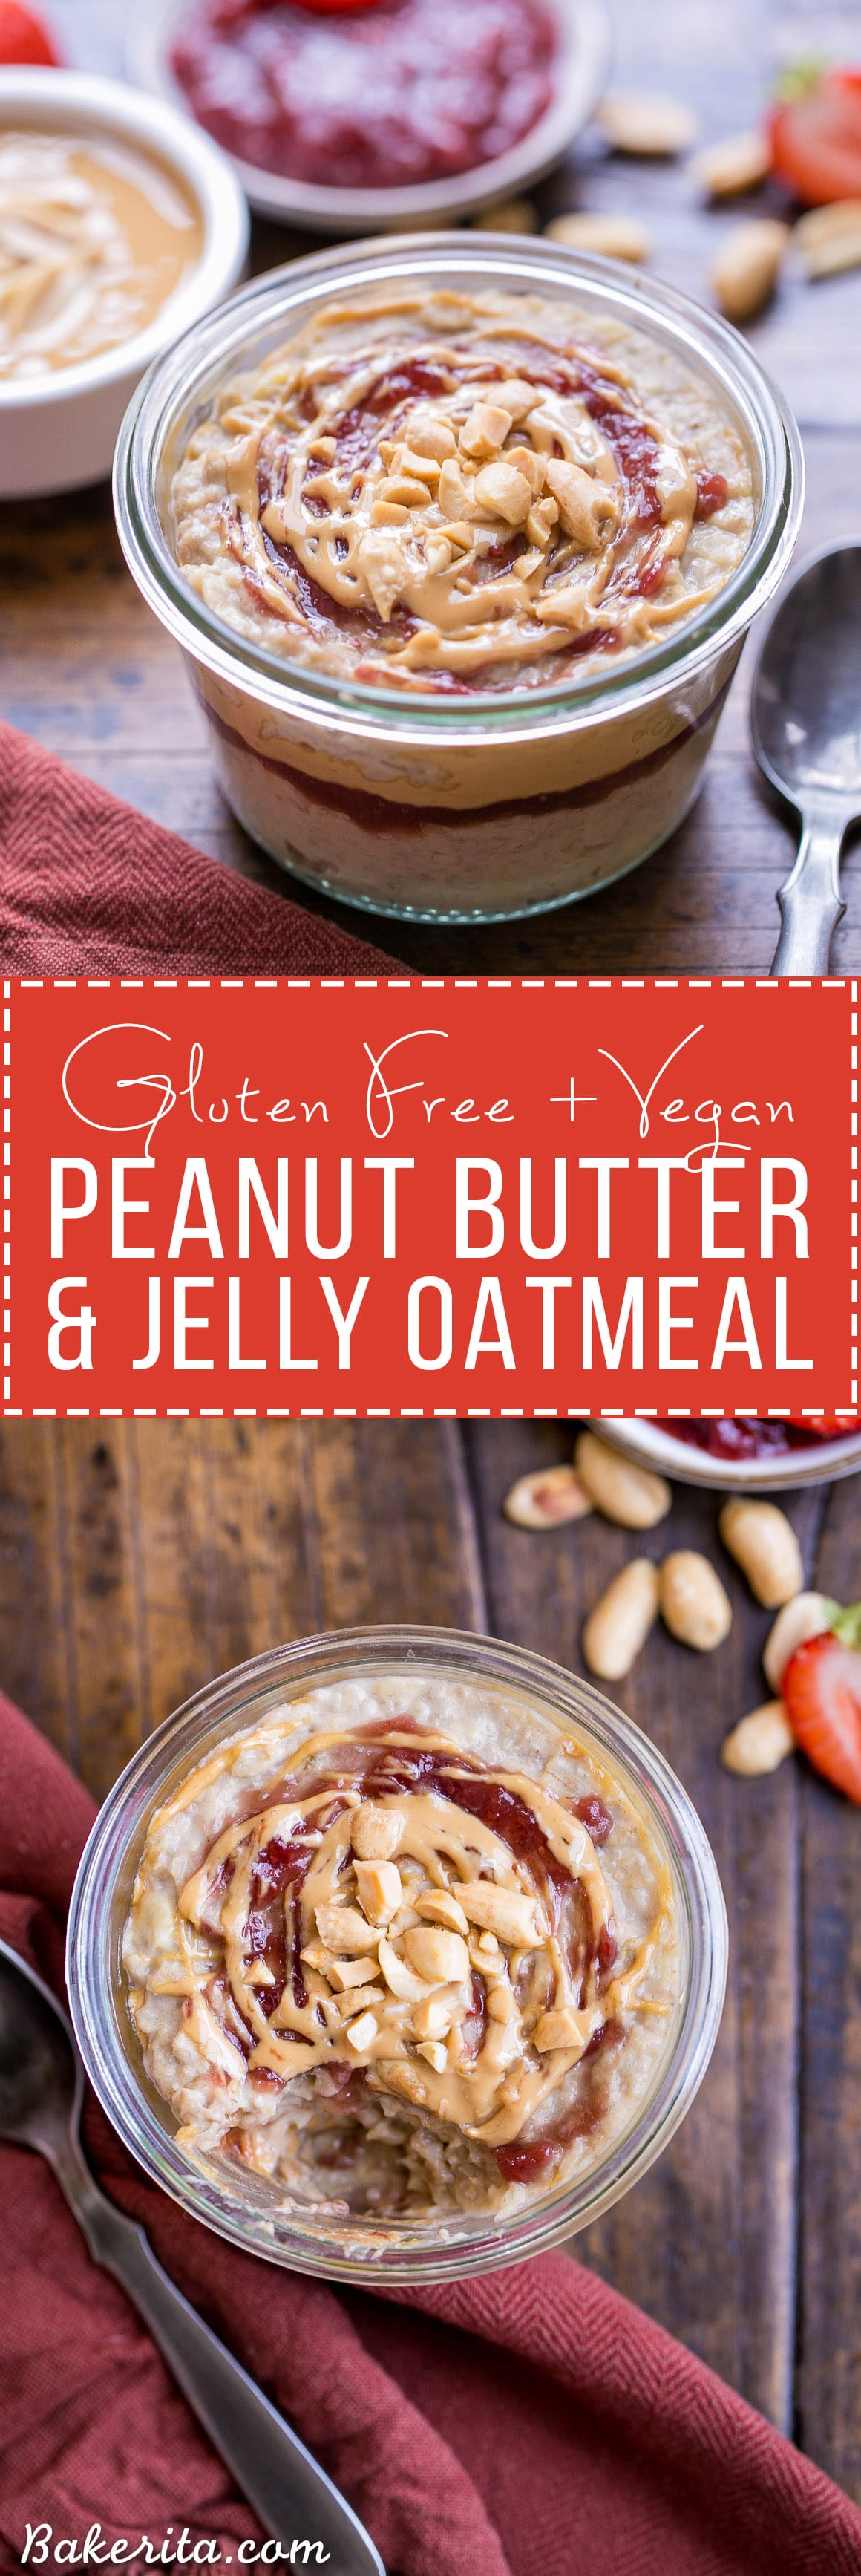 Start your morning with Peanut Butter & Jelly Oatmeal for a healthy ...